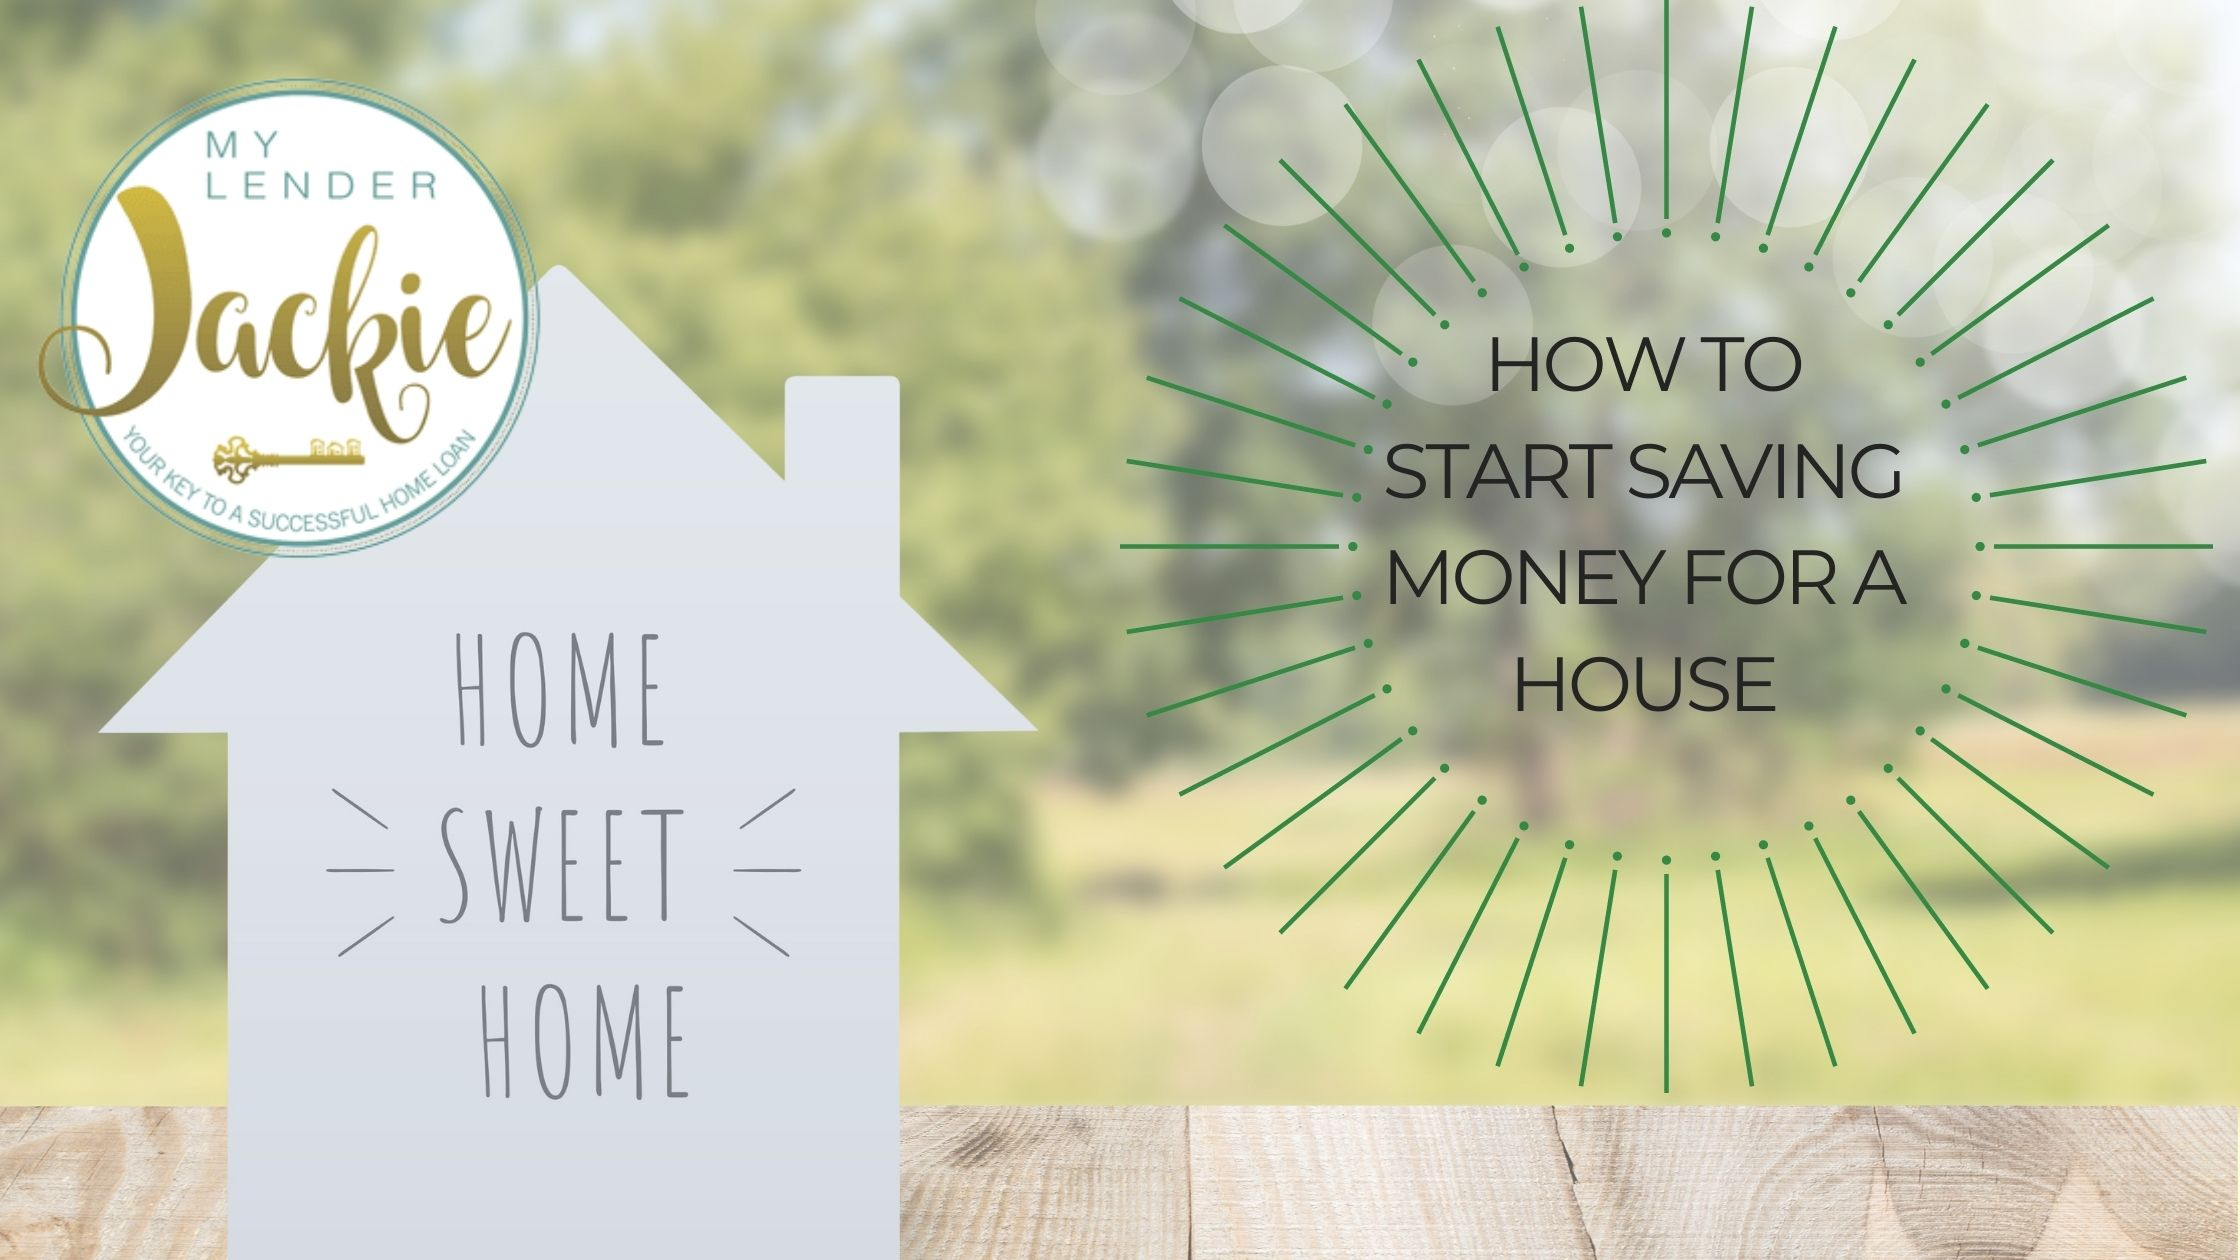 How to Start Saving Money for a House